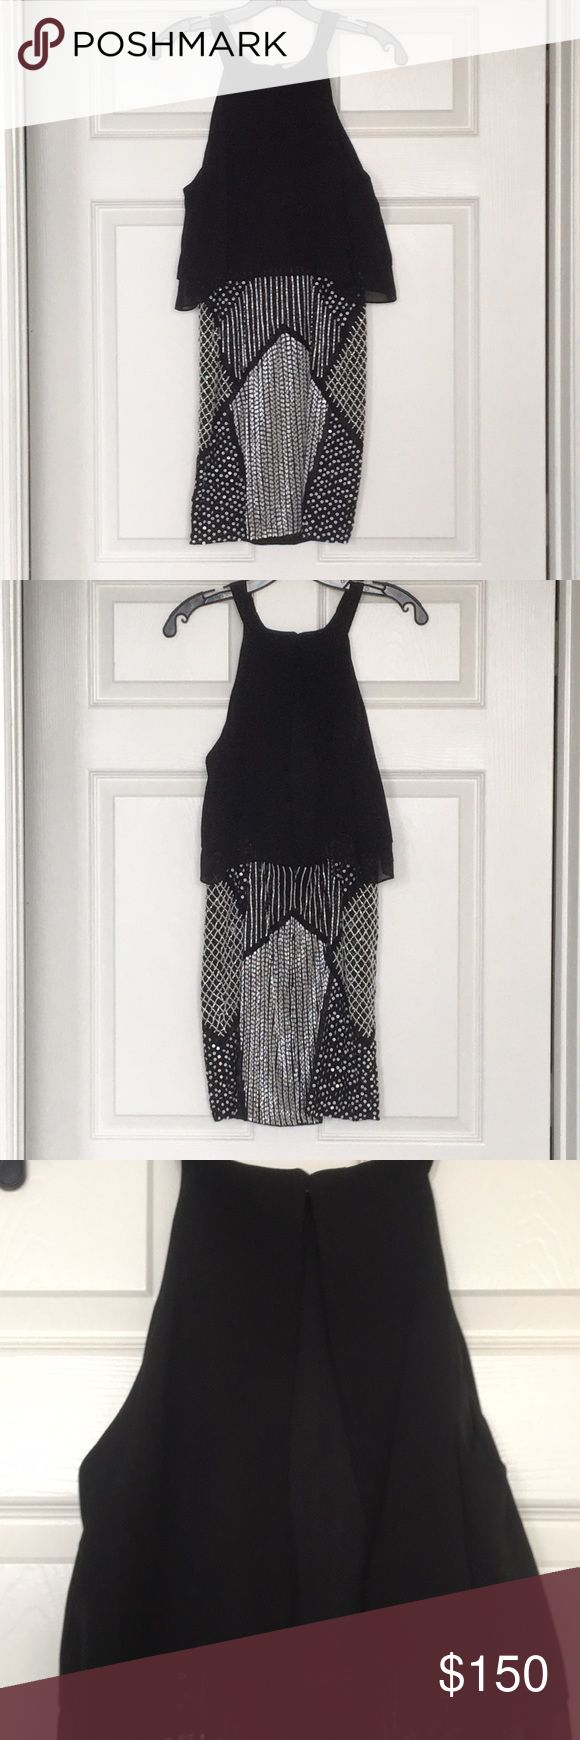 Beaded Black and White Parker Dress Halterneck party dress made by Parker. Open back. Skirt and top are attached. Hook and eye closure at the neck and zipper in back of the skirt. Beaded skirt is fully lined. Comes with extra replacement beads. Only worn once. Parker Dresses Mini